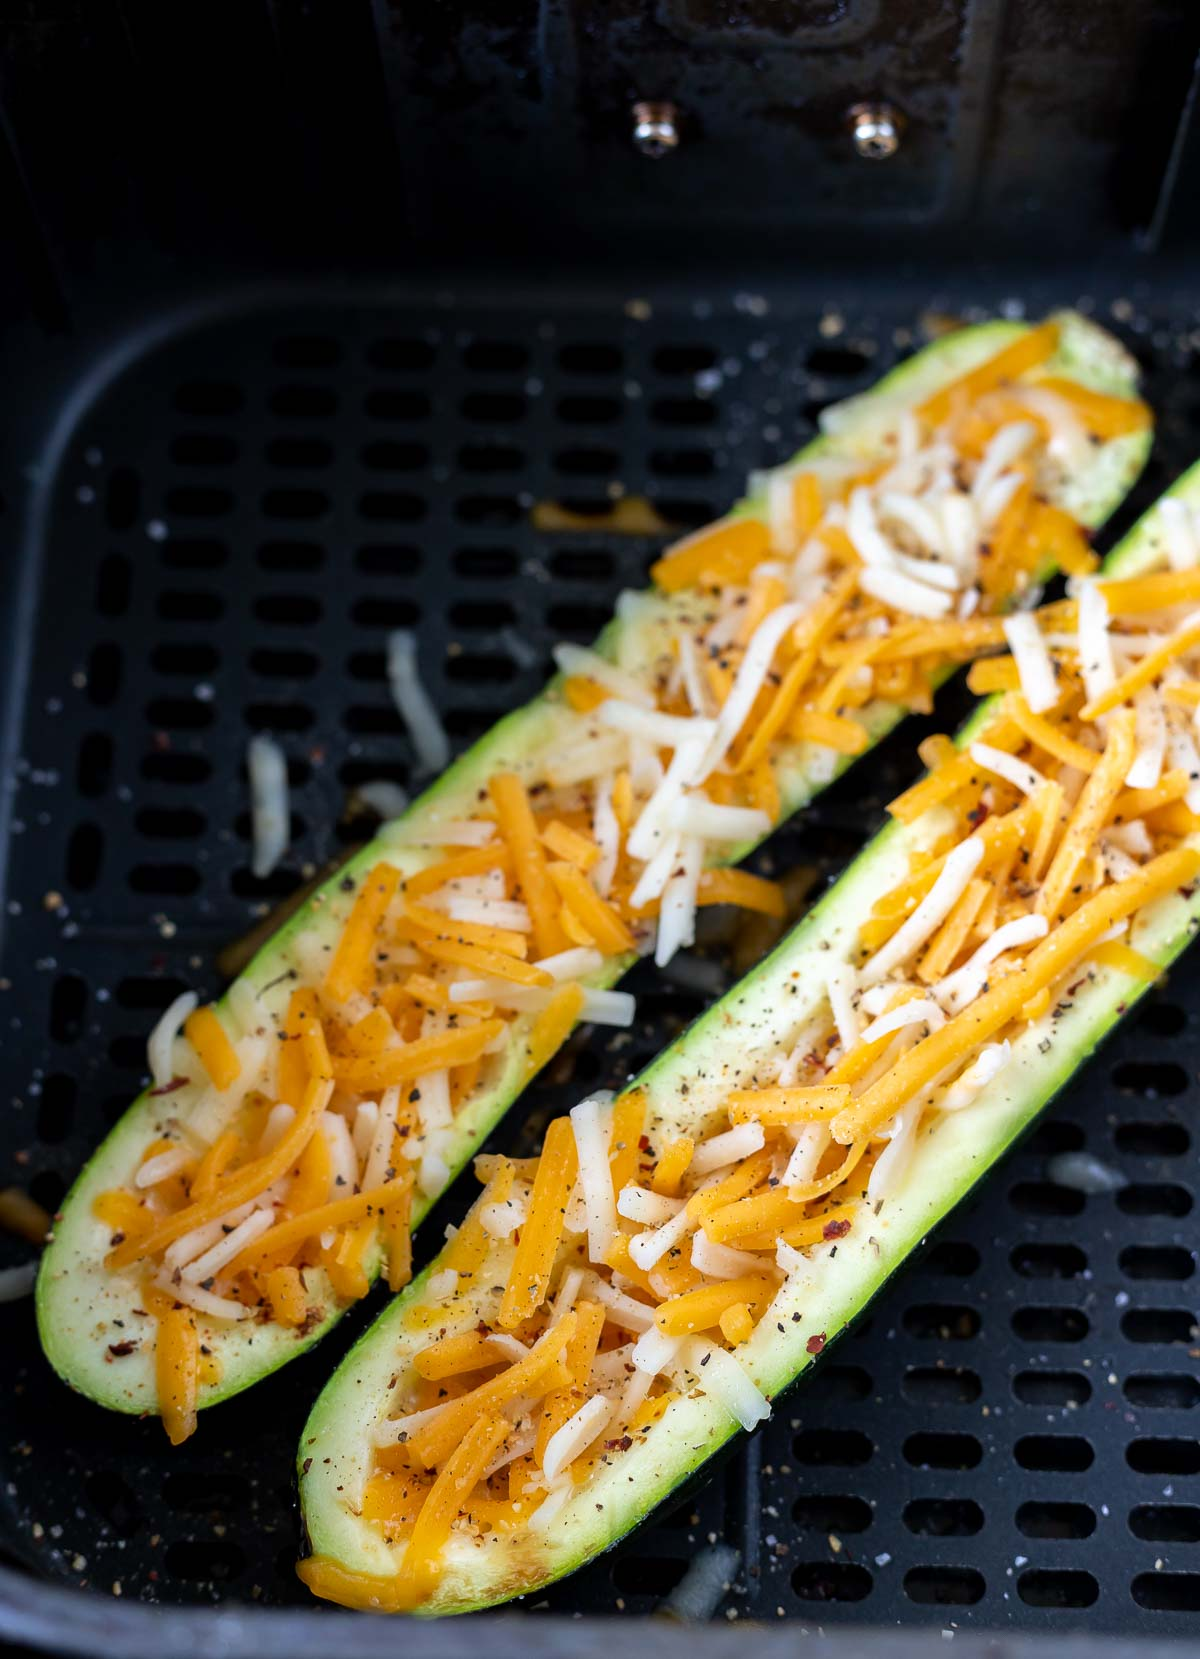 zucchini boats topped with shredded cheese in air fryer basket